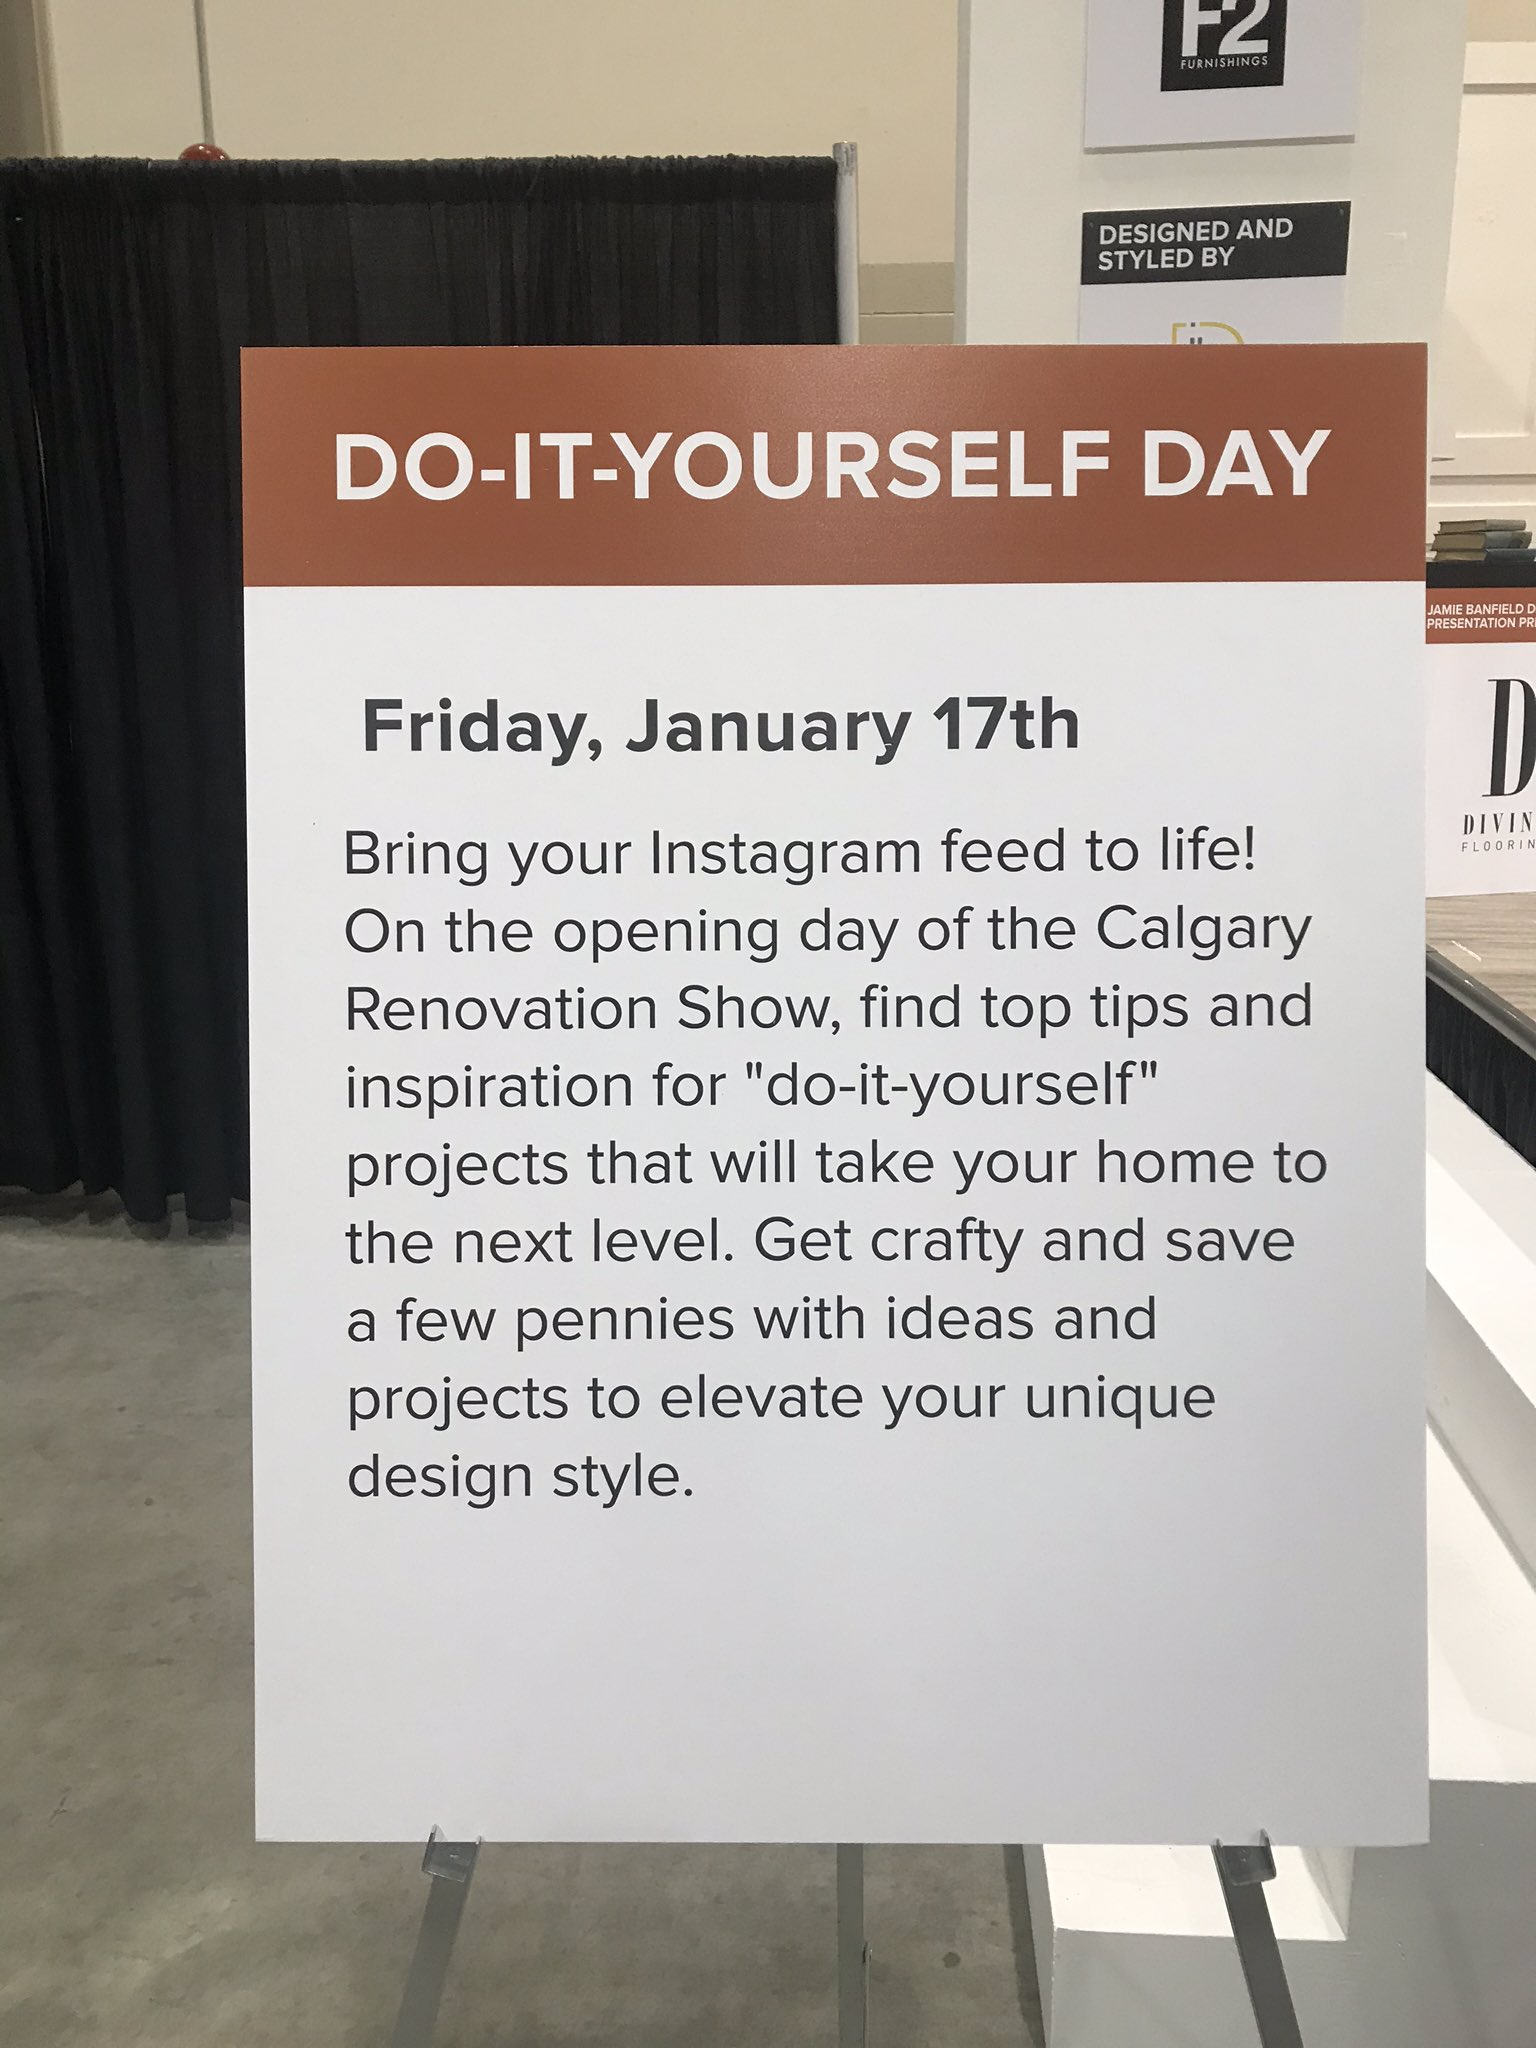 Calgary Home Shows On Twitter Did You Know It S Diy Day Today At Crs20 Find Everything You Need To Get That Home Improvement Project Finished Chat To The Experts Who Can Help